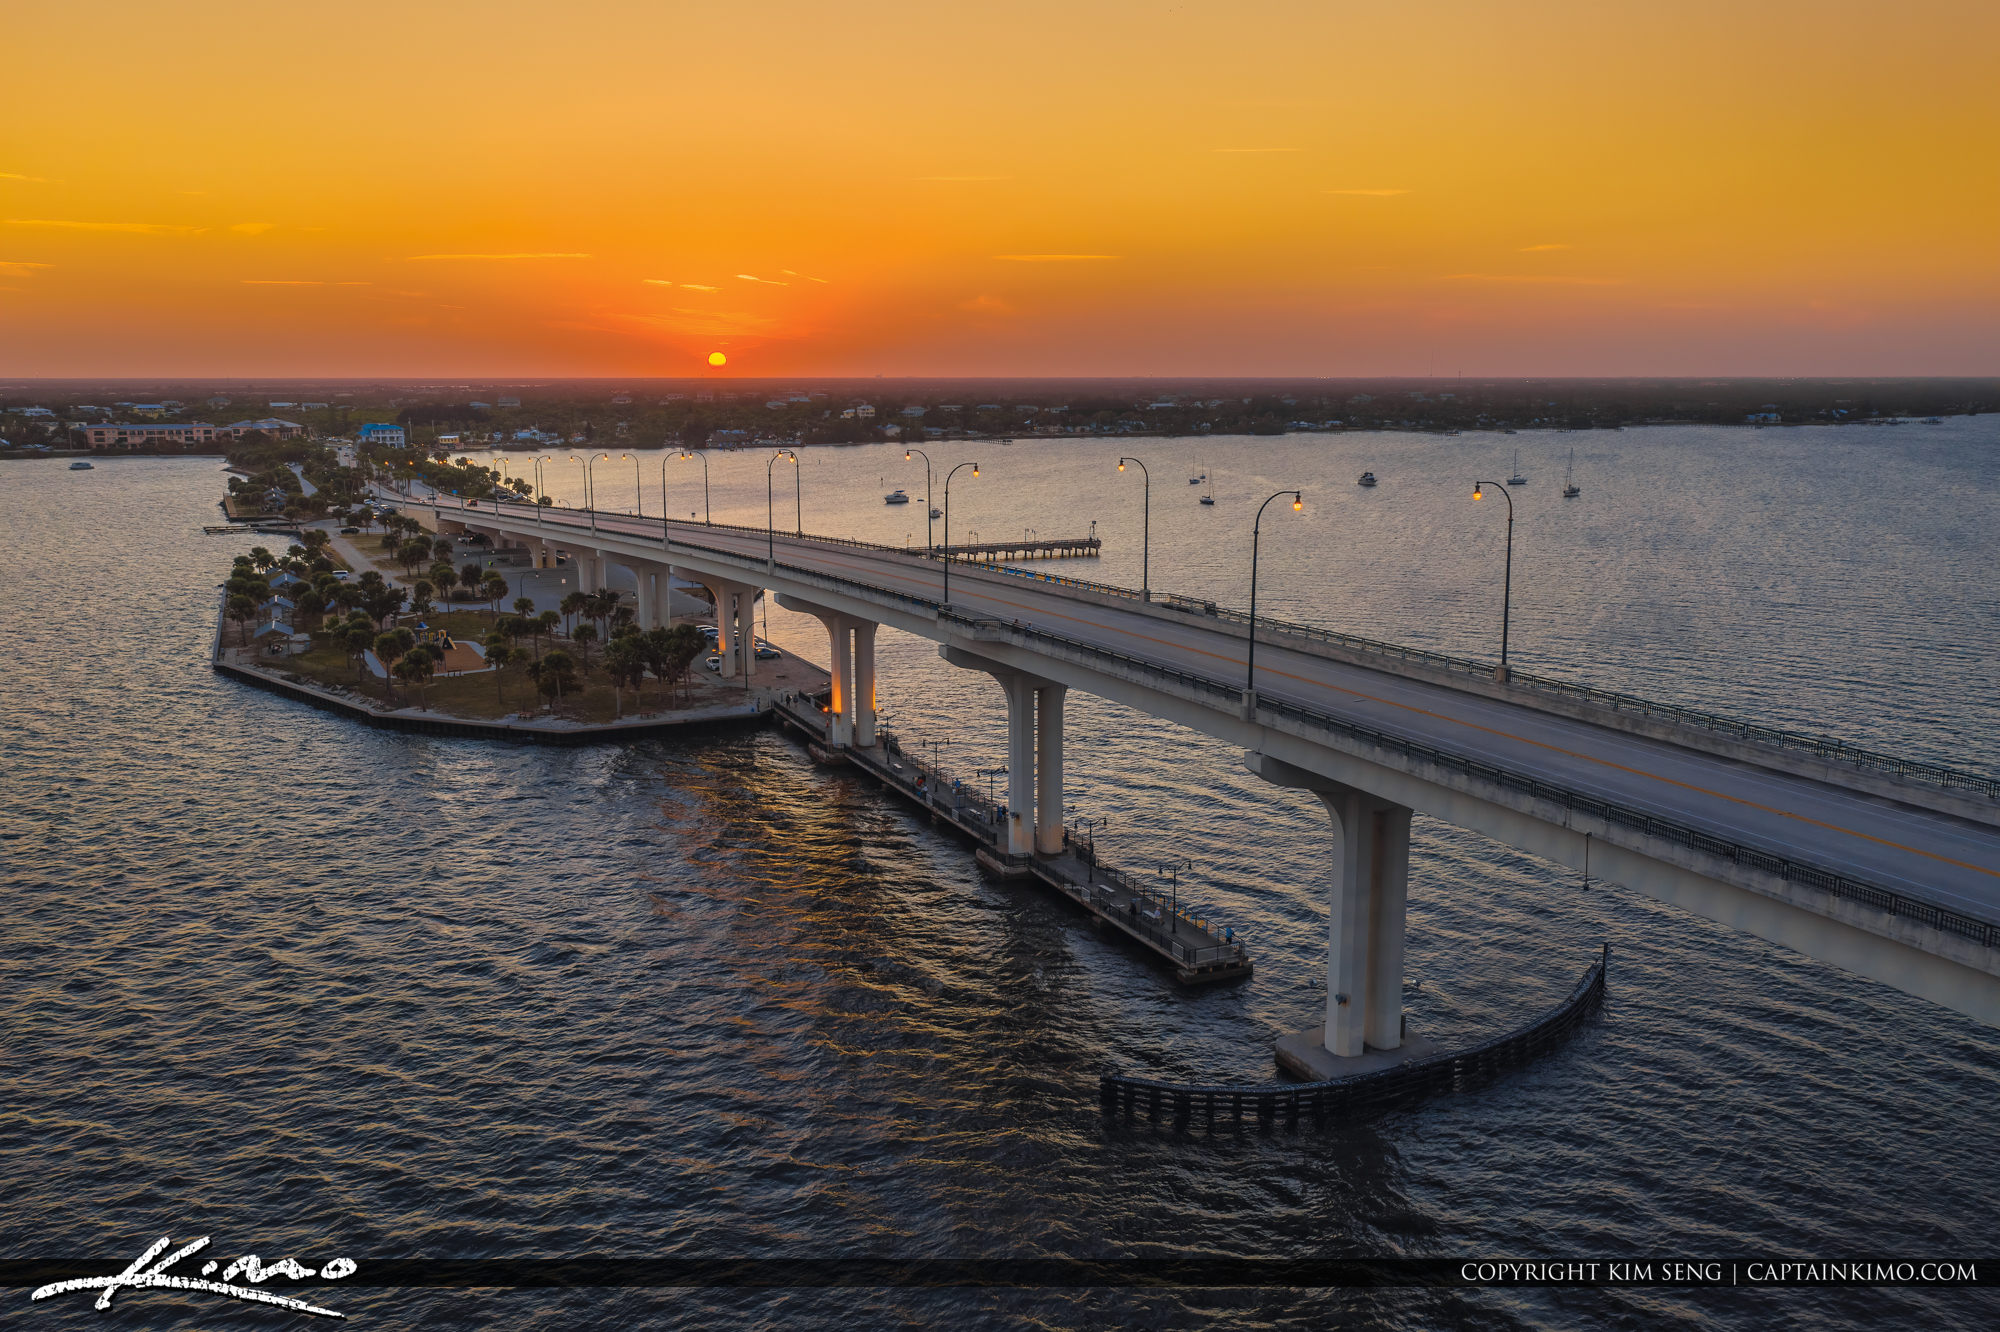 Jensen Beach Causeway Sunset at Indian River